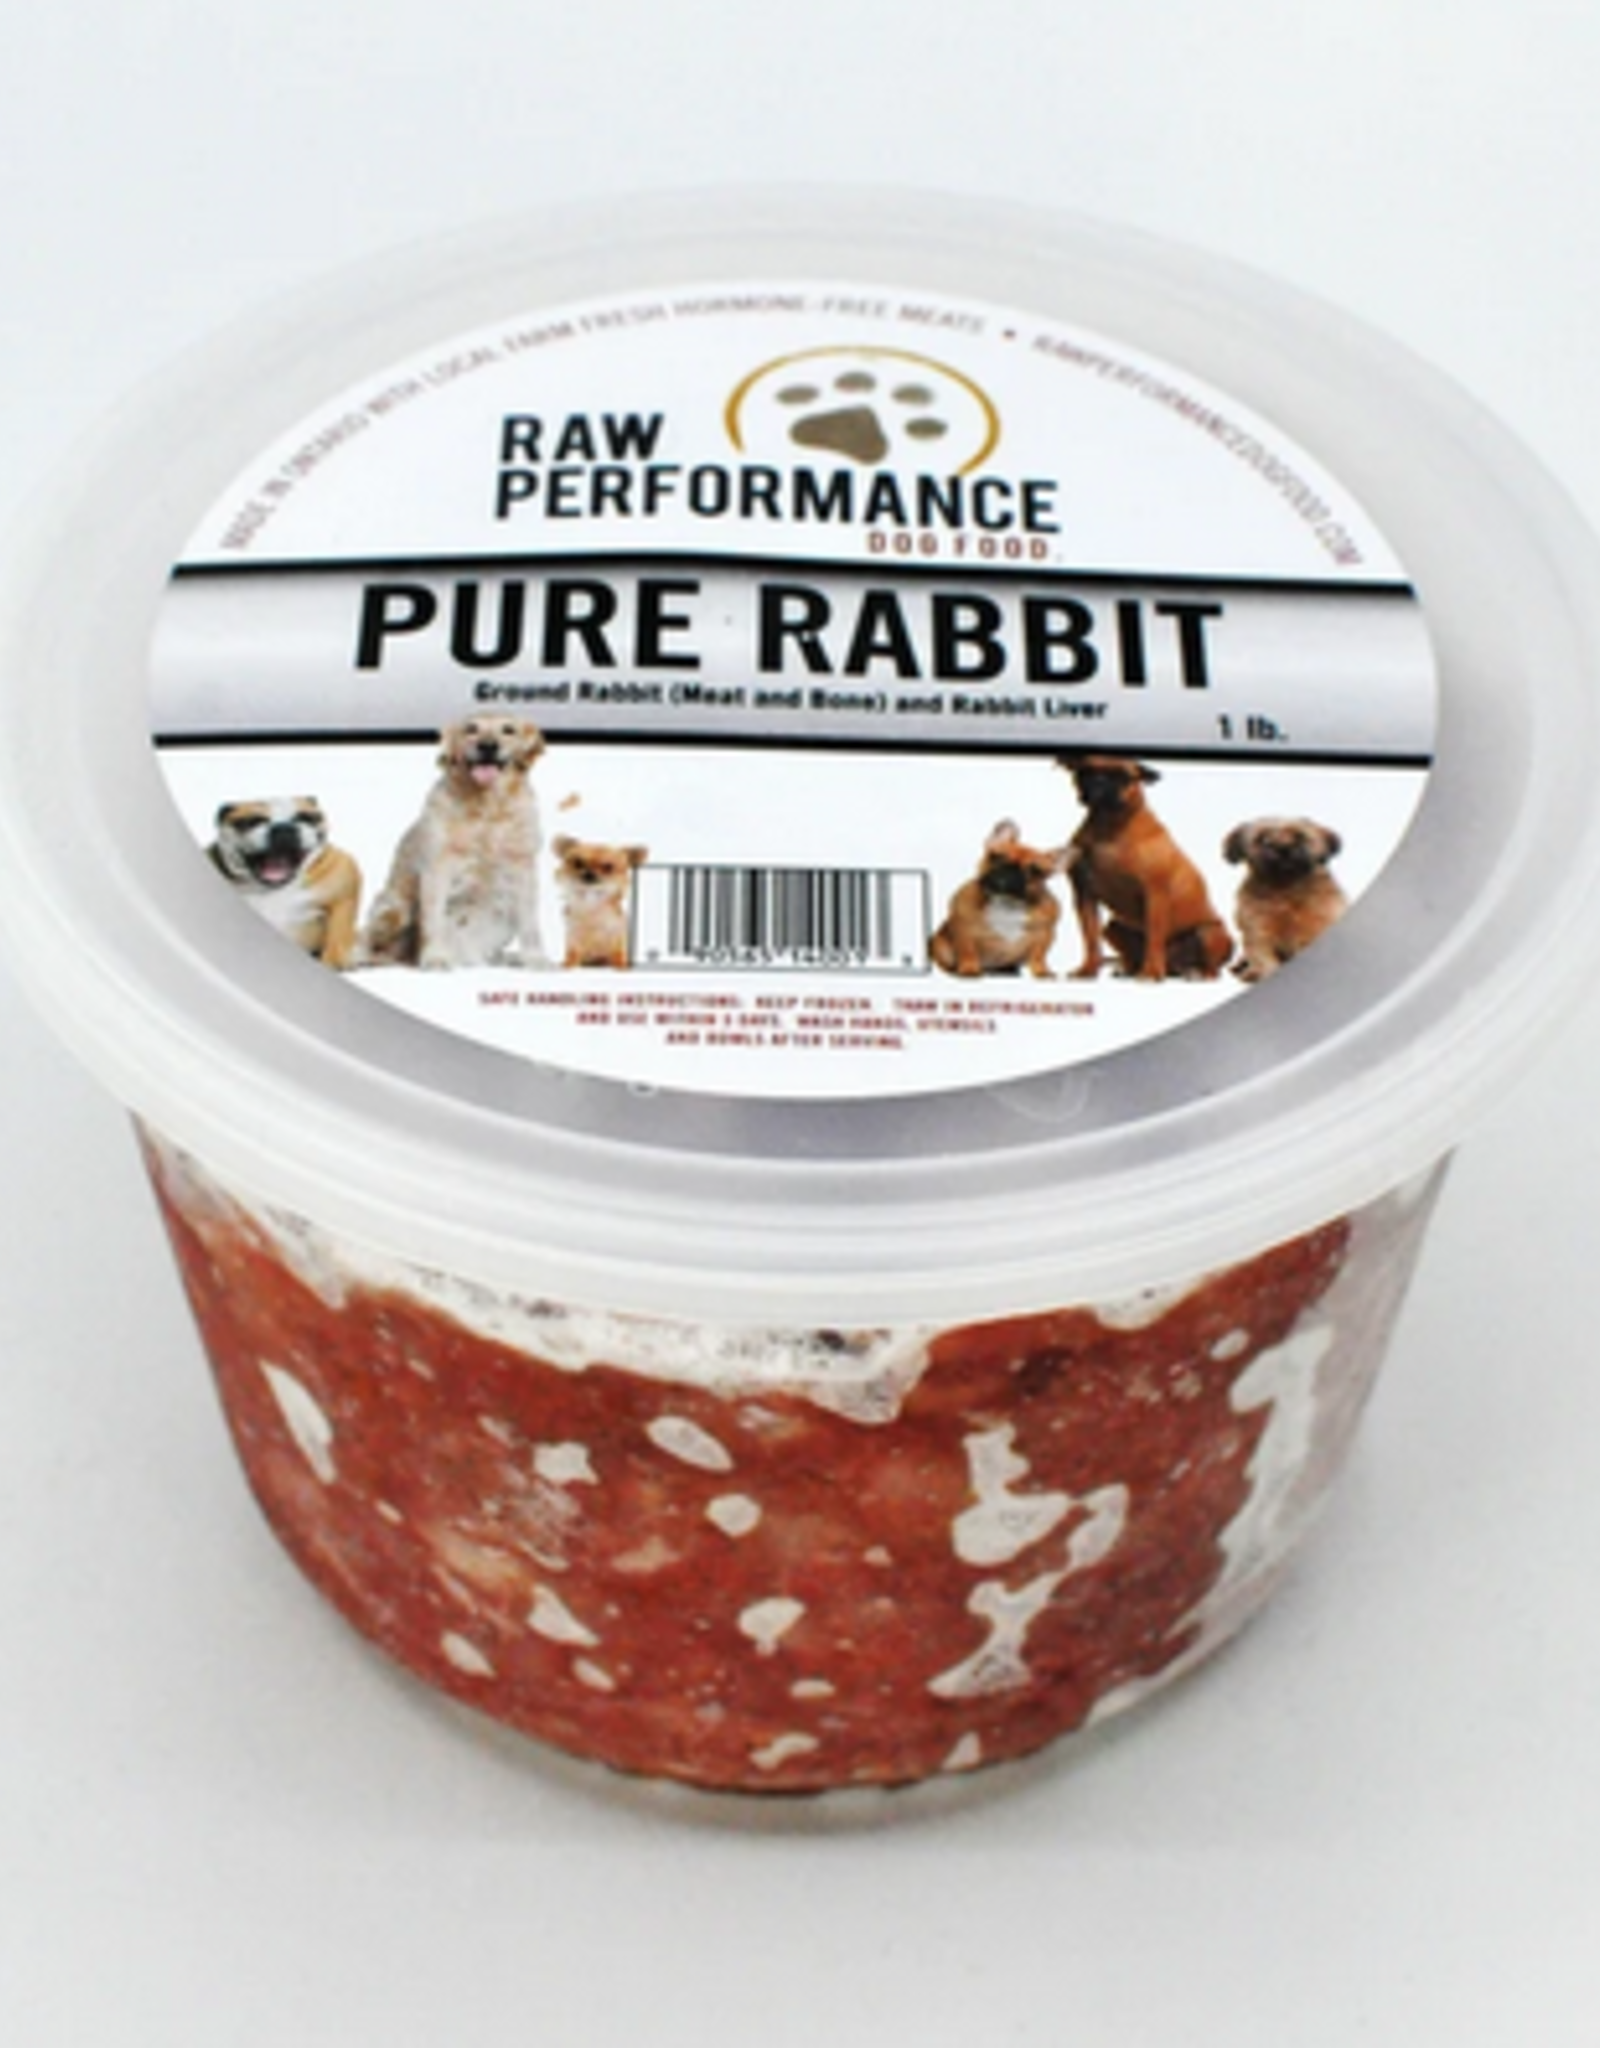 Raw Performance Raw Performance - Pure Rabbit 1lb